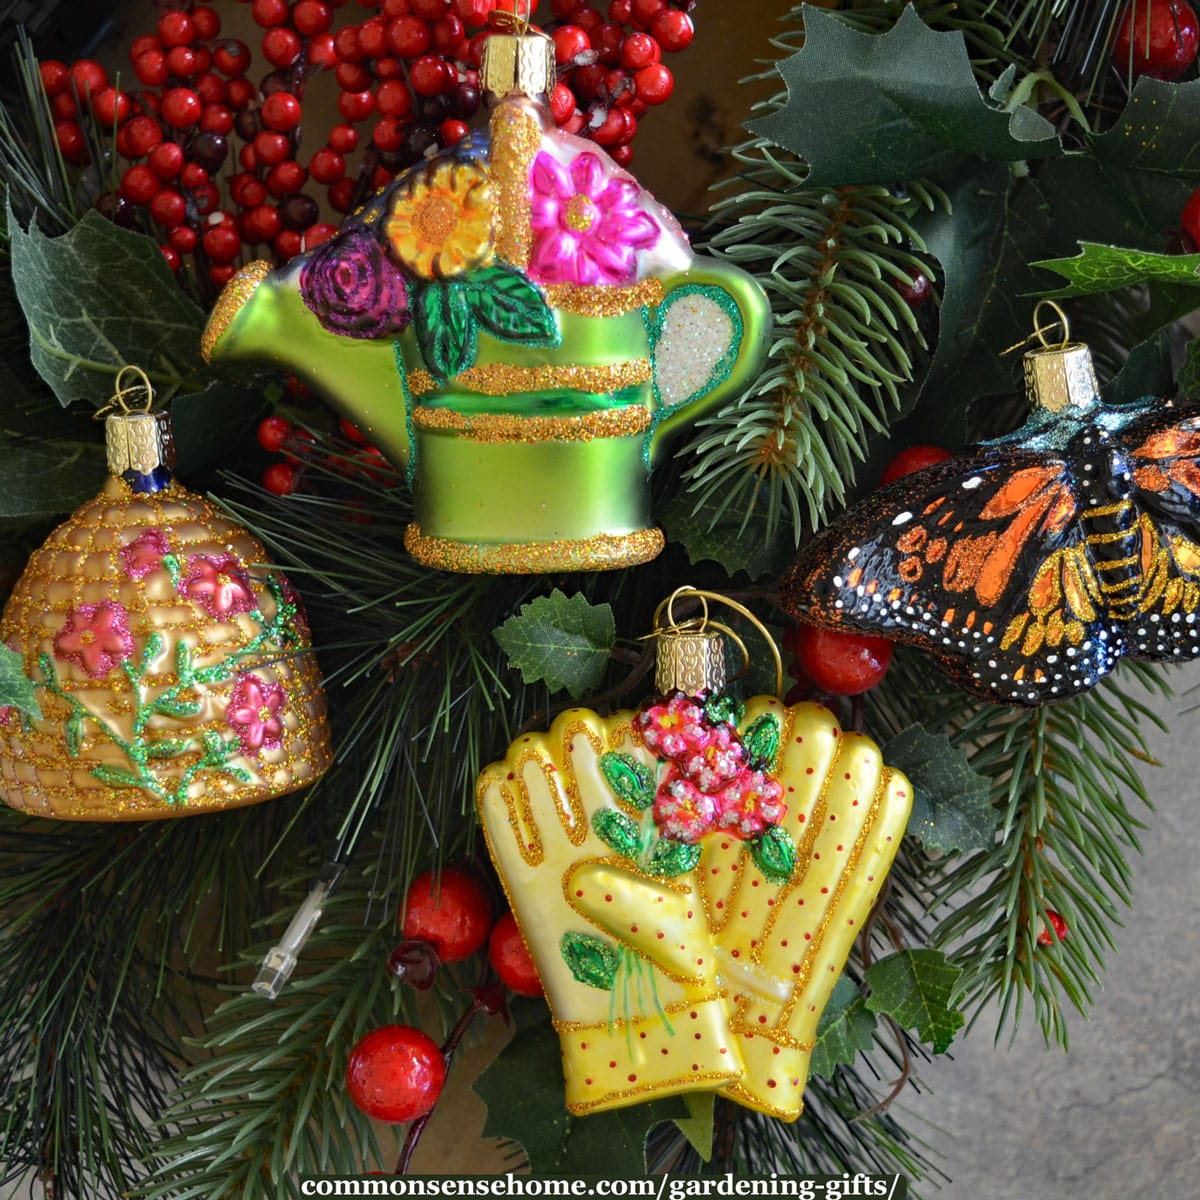 gardening ornaments for Christmas tree